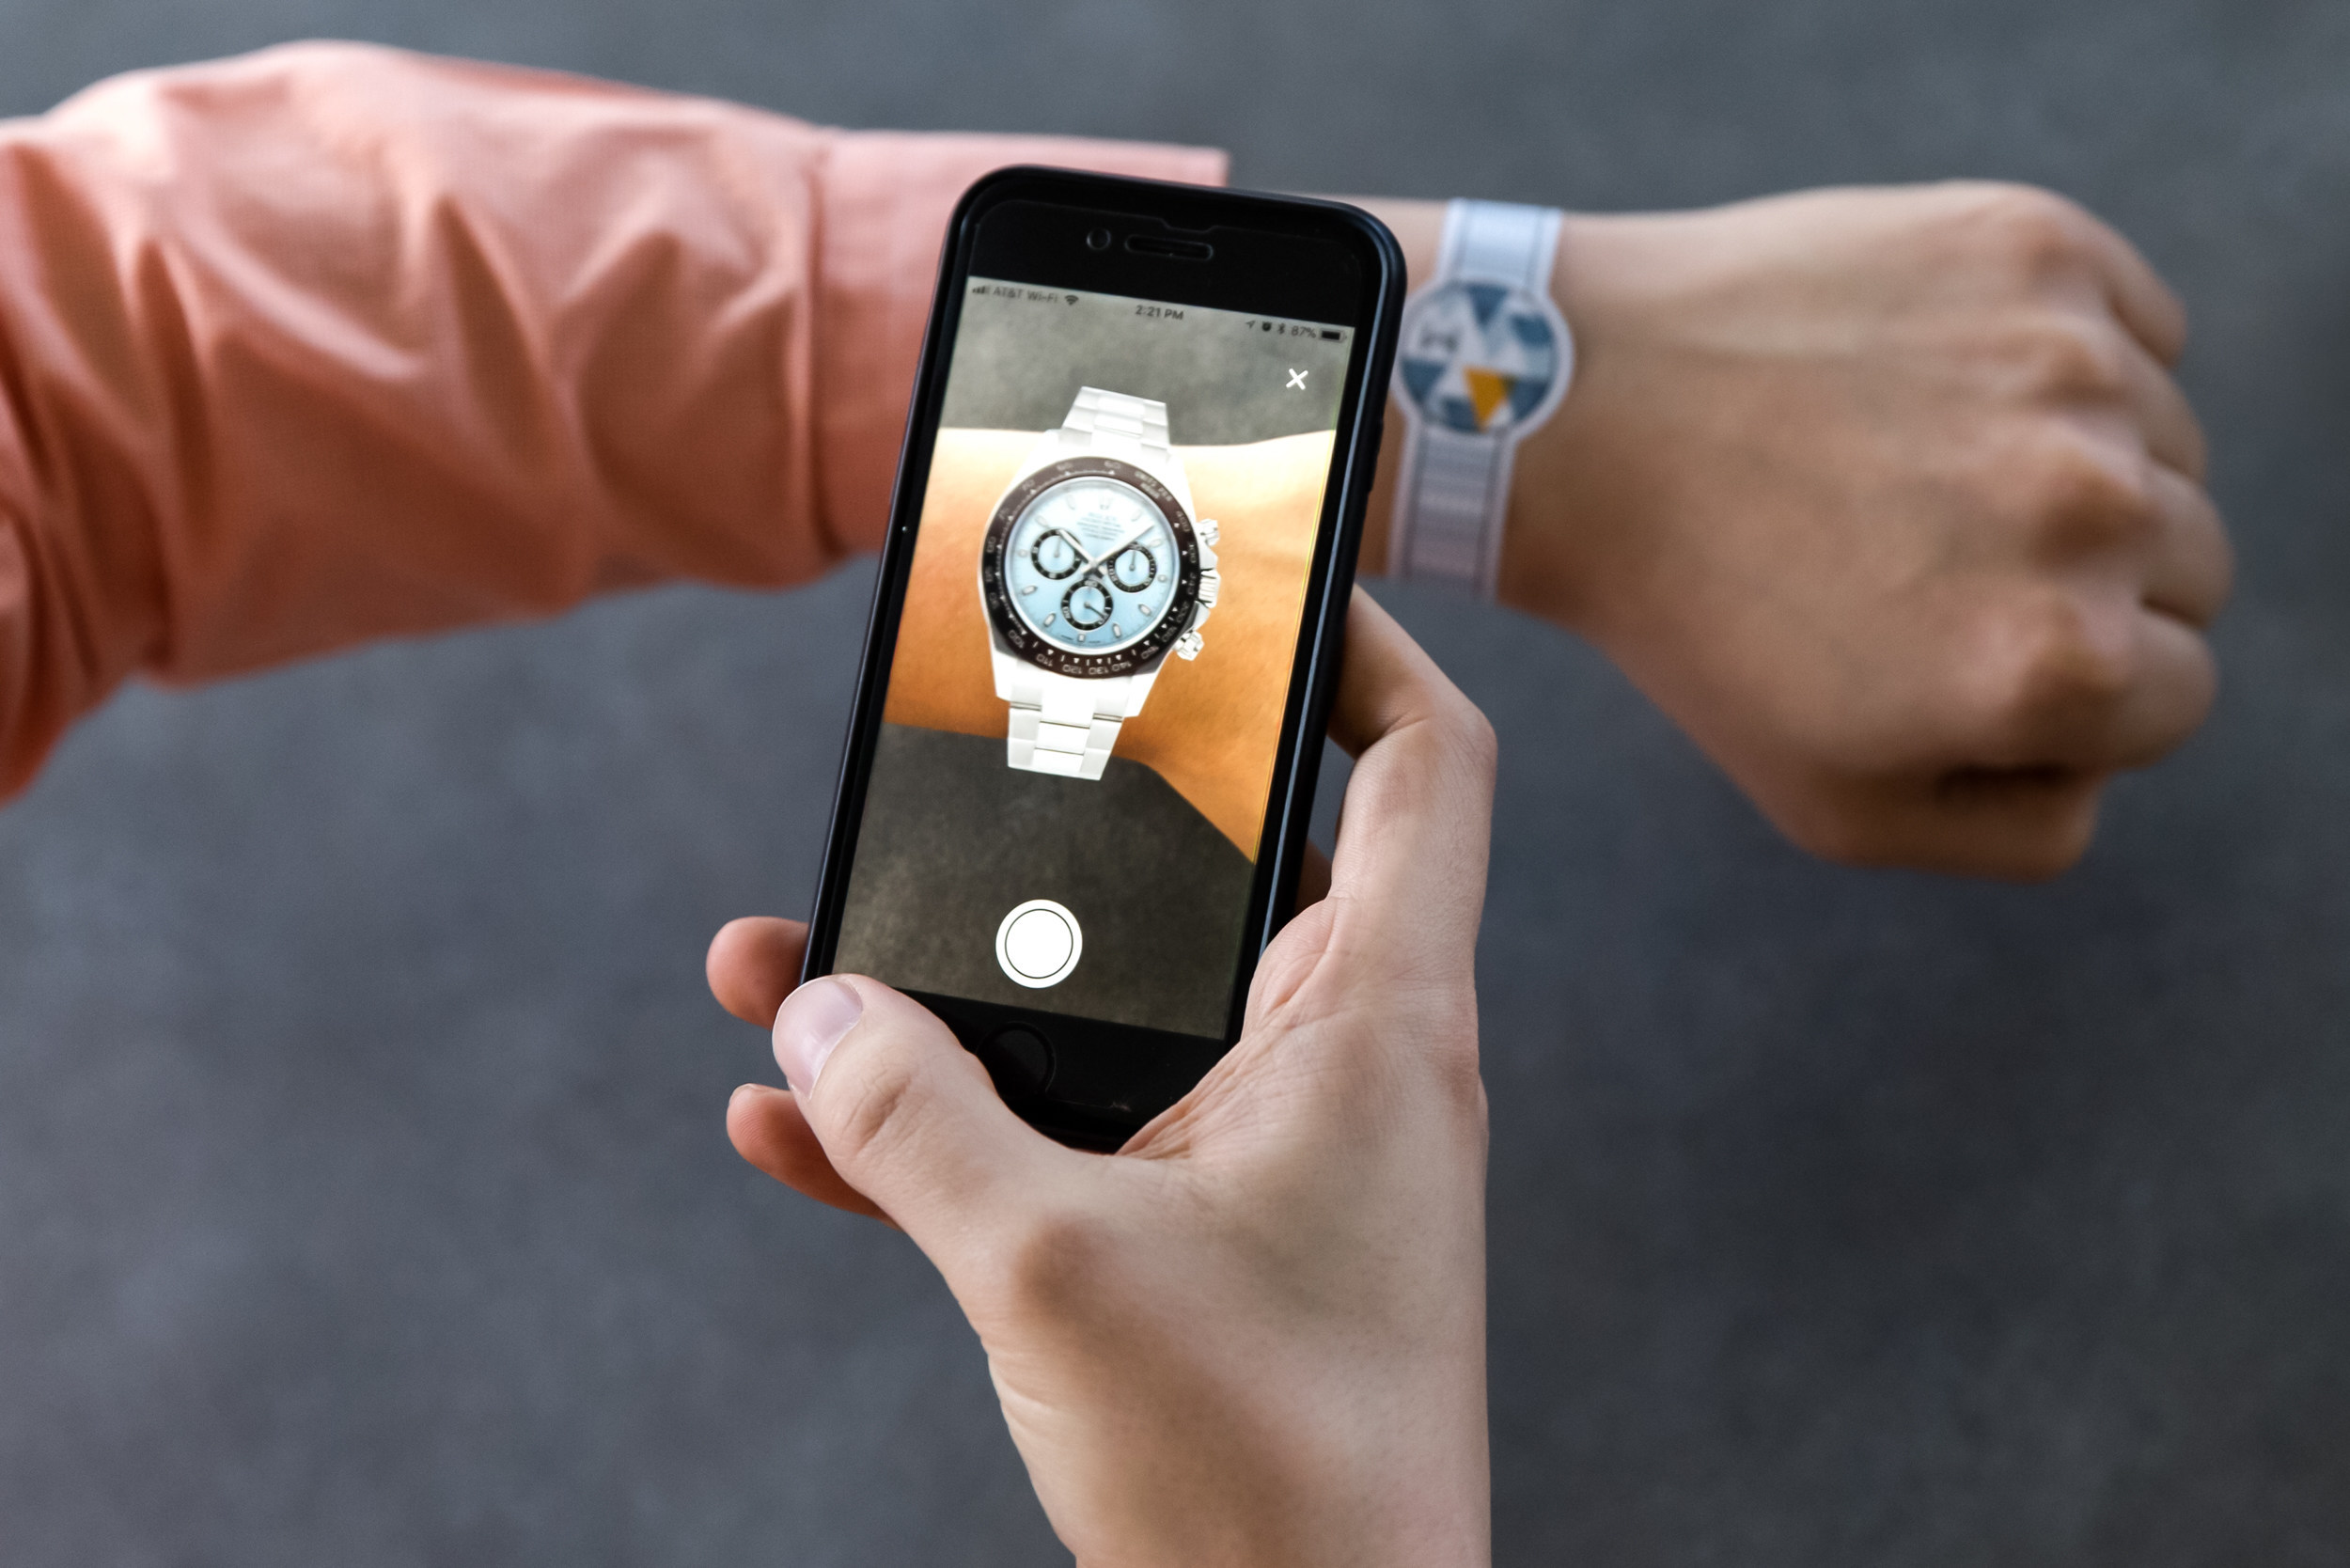 Pre-Owned Luxury Watch E-commerce Platform WatchBox Updates its App with Augmented Reality Feature